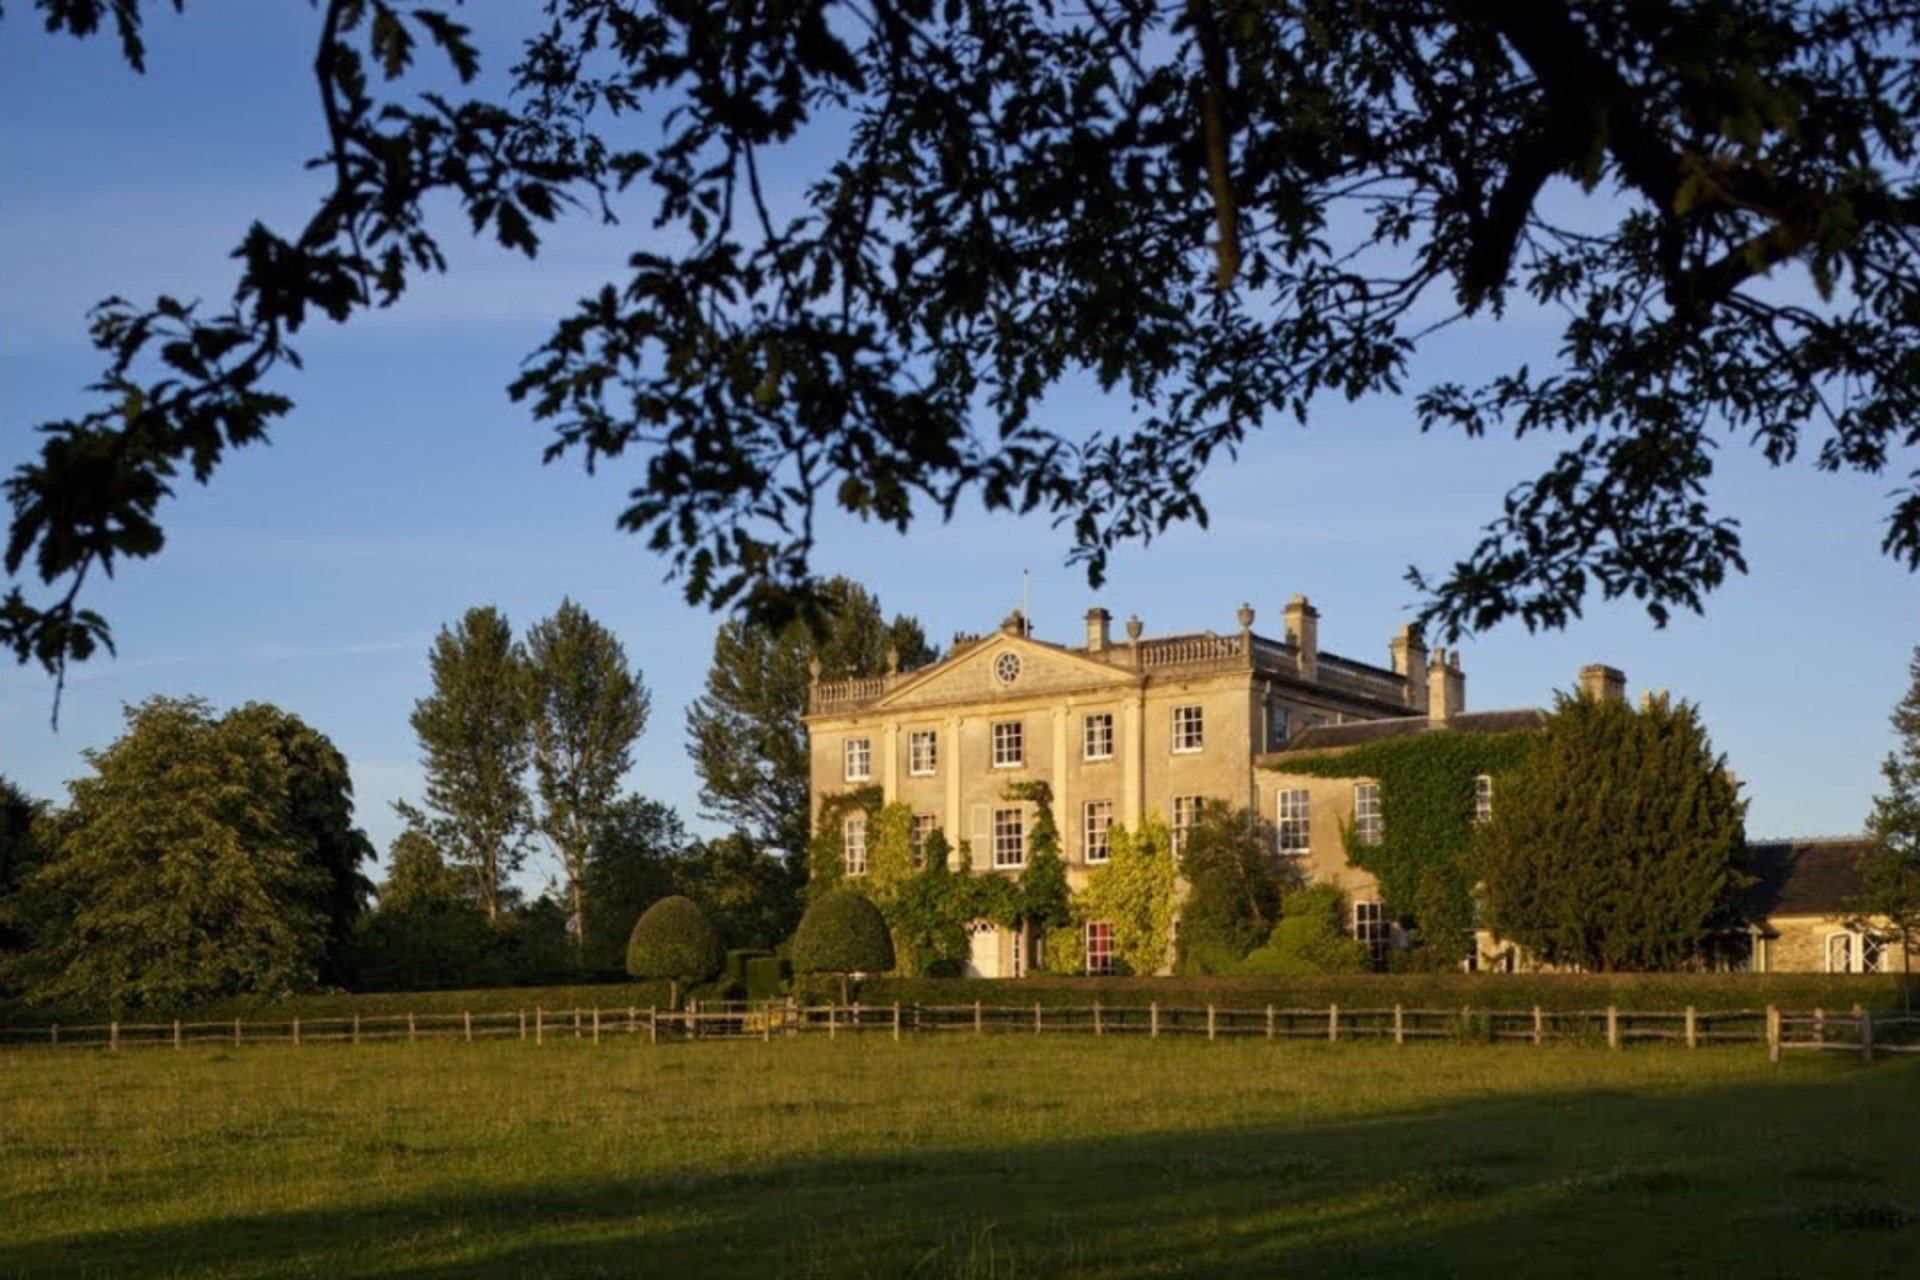 Exterior of Highgrove House in Gloucestershire